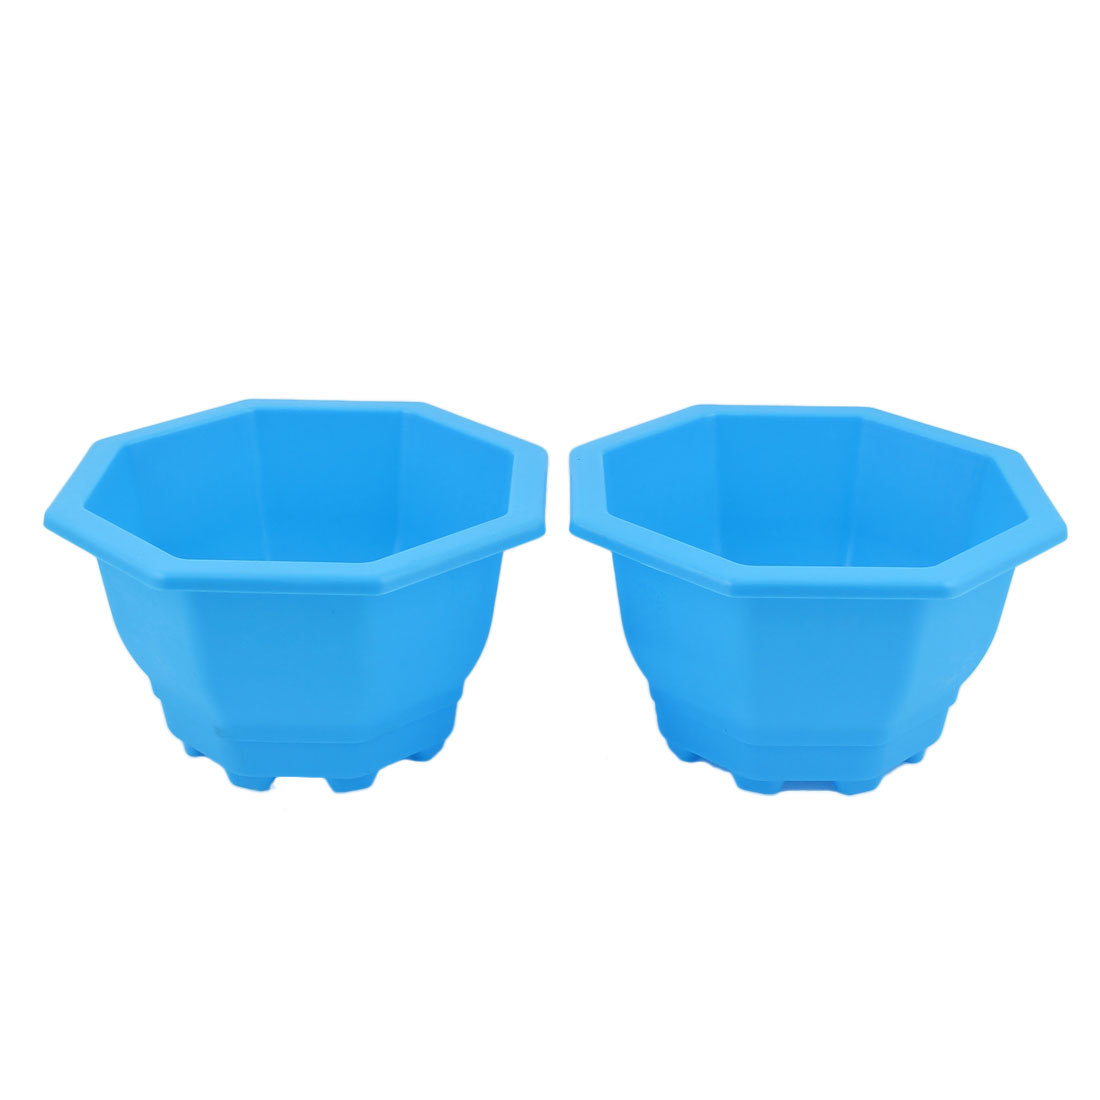 Plastic Octagon Shaped Home Garden Window Decor Plant Flower Pot Blue 2pcs